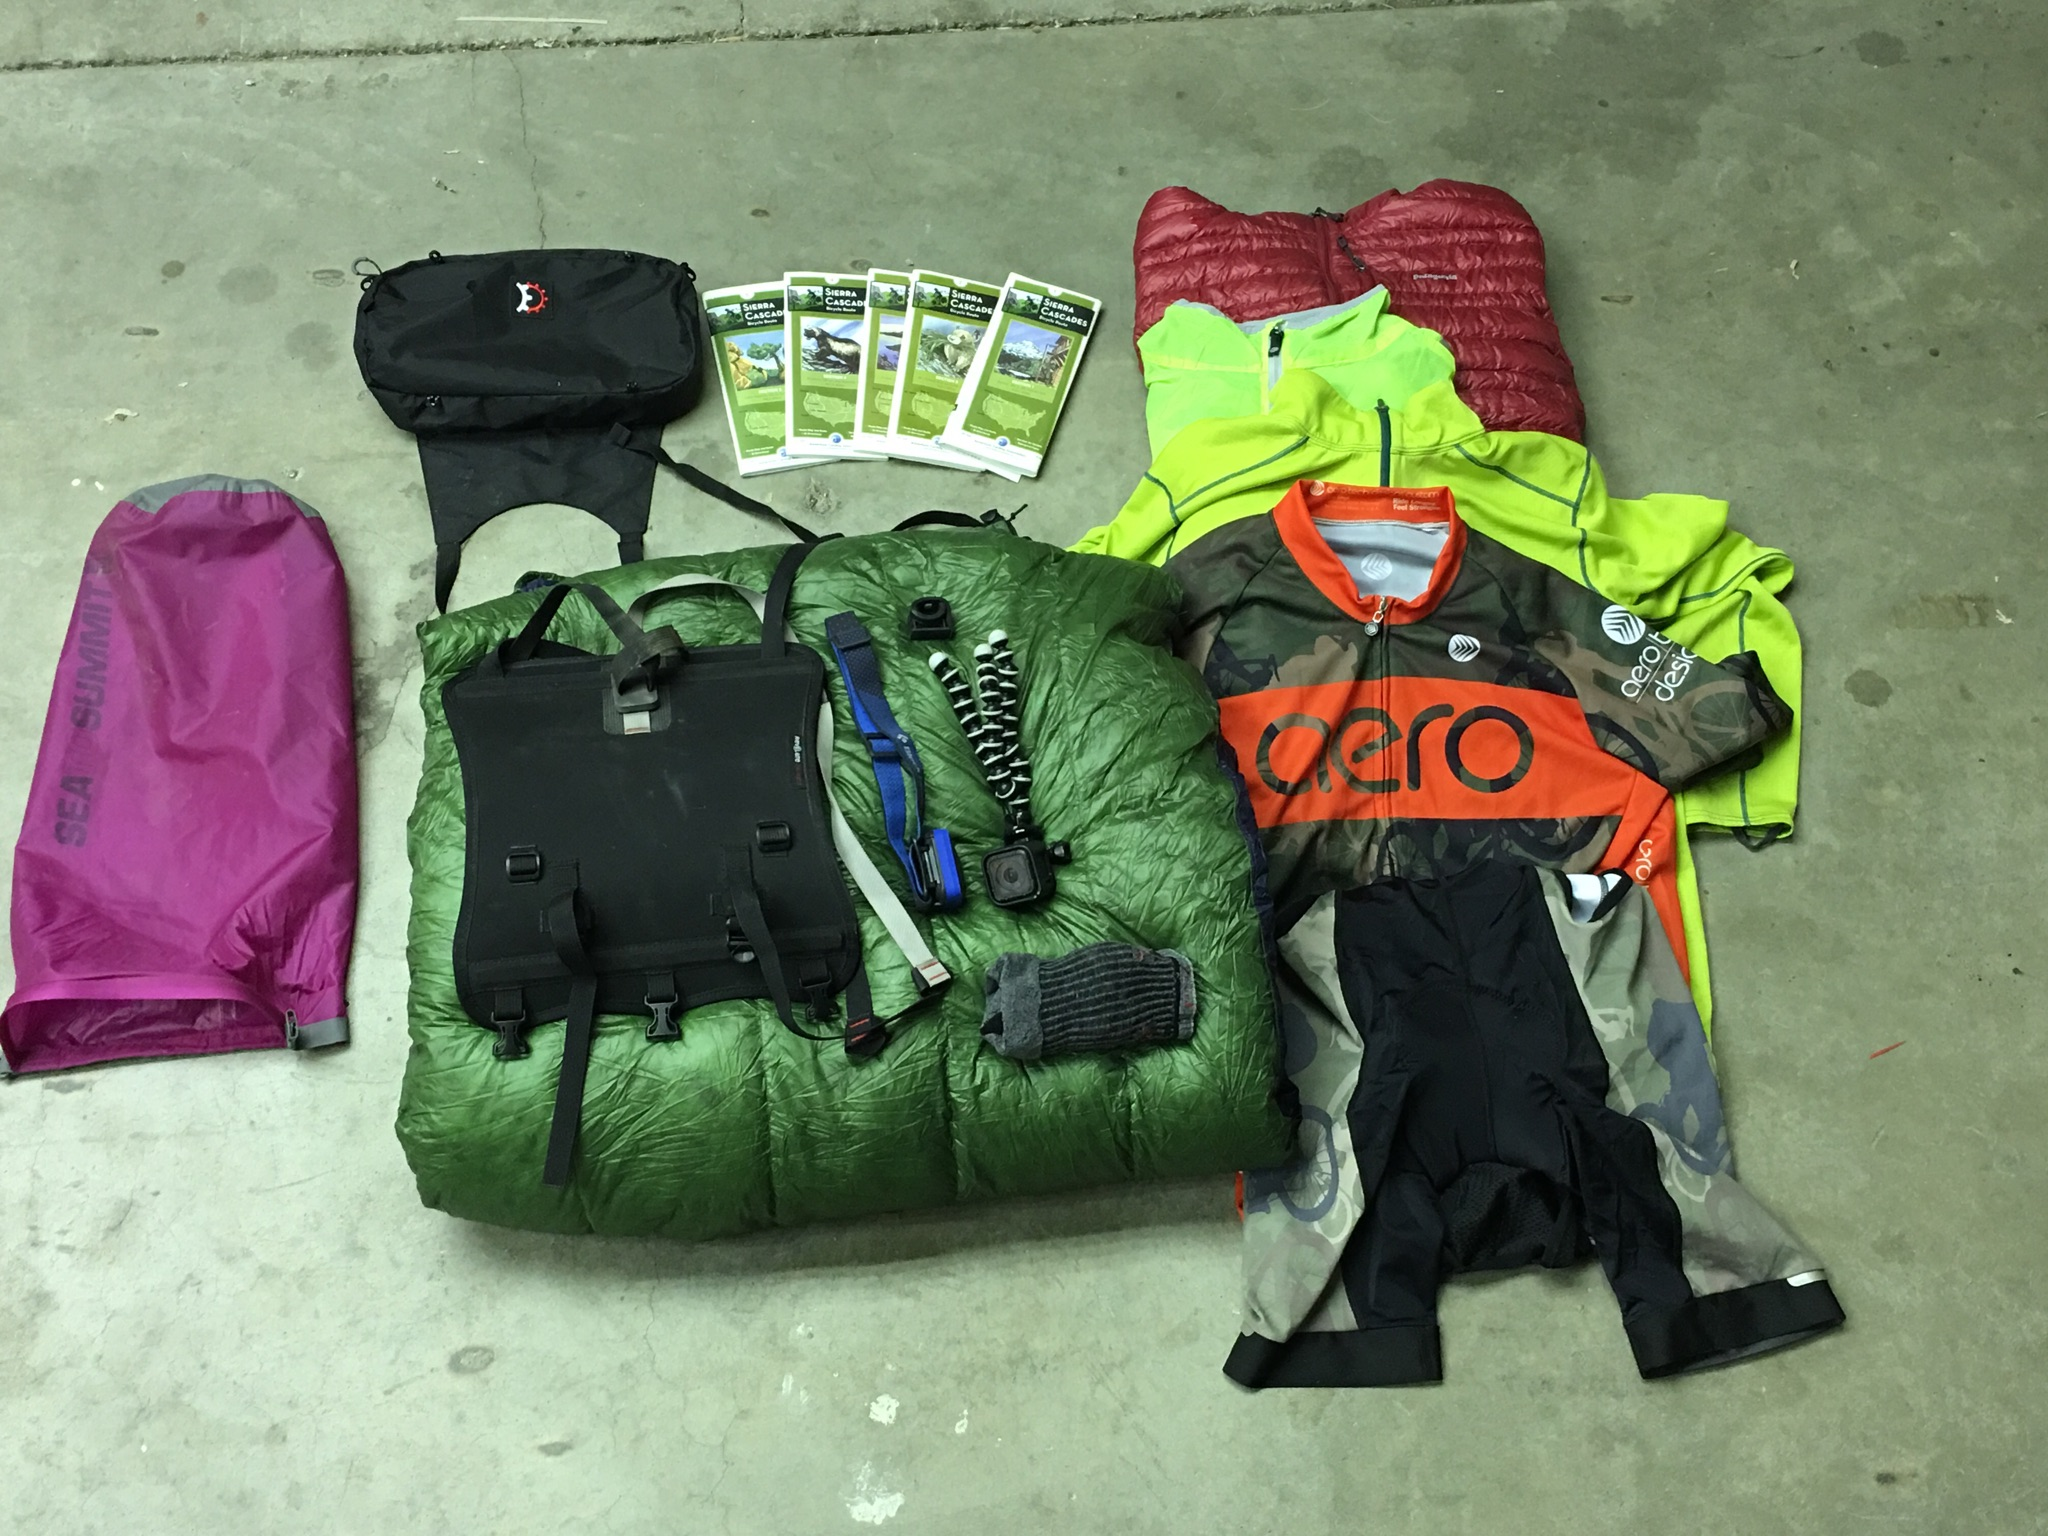 Revelate Designs Harness and Pocket.  Stuff Sack Content:  Clothes- Patagonia Ultra Light Down Coat, Patagonia Capoline Long Sleeve, Aerotech Designs Jersey and Bibs, and Darn Tough Cool Max socks  Sleeping Bag- 10 degree Revelation Quilt by Enlightened Equipment.  Pocket Content: Black Diamond Spot headlamp, GoPro Hero4 and mini tripod ( Thanks Mom and Dad!!), and the Adventure Cycling Association Sierra Cascade Route map set.  There is also plenty of room left in the pocket for an entire package of mini-snickers bars.